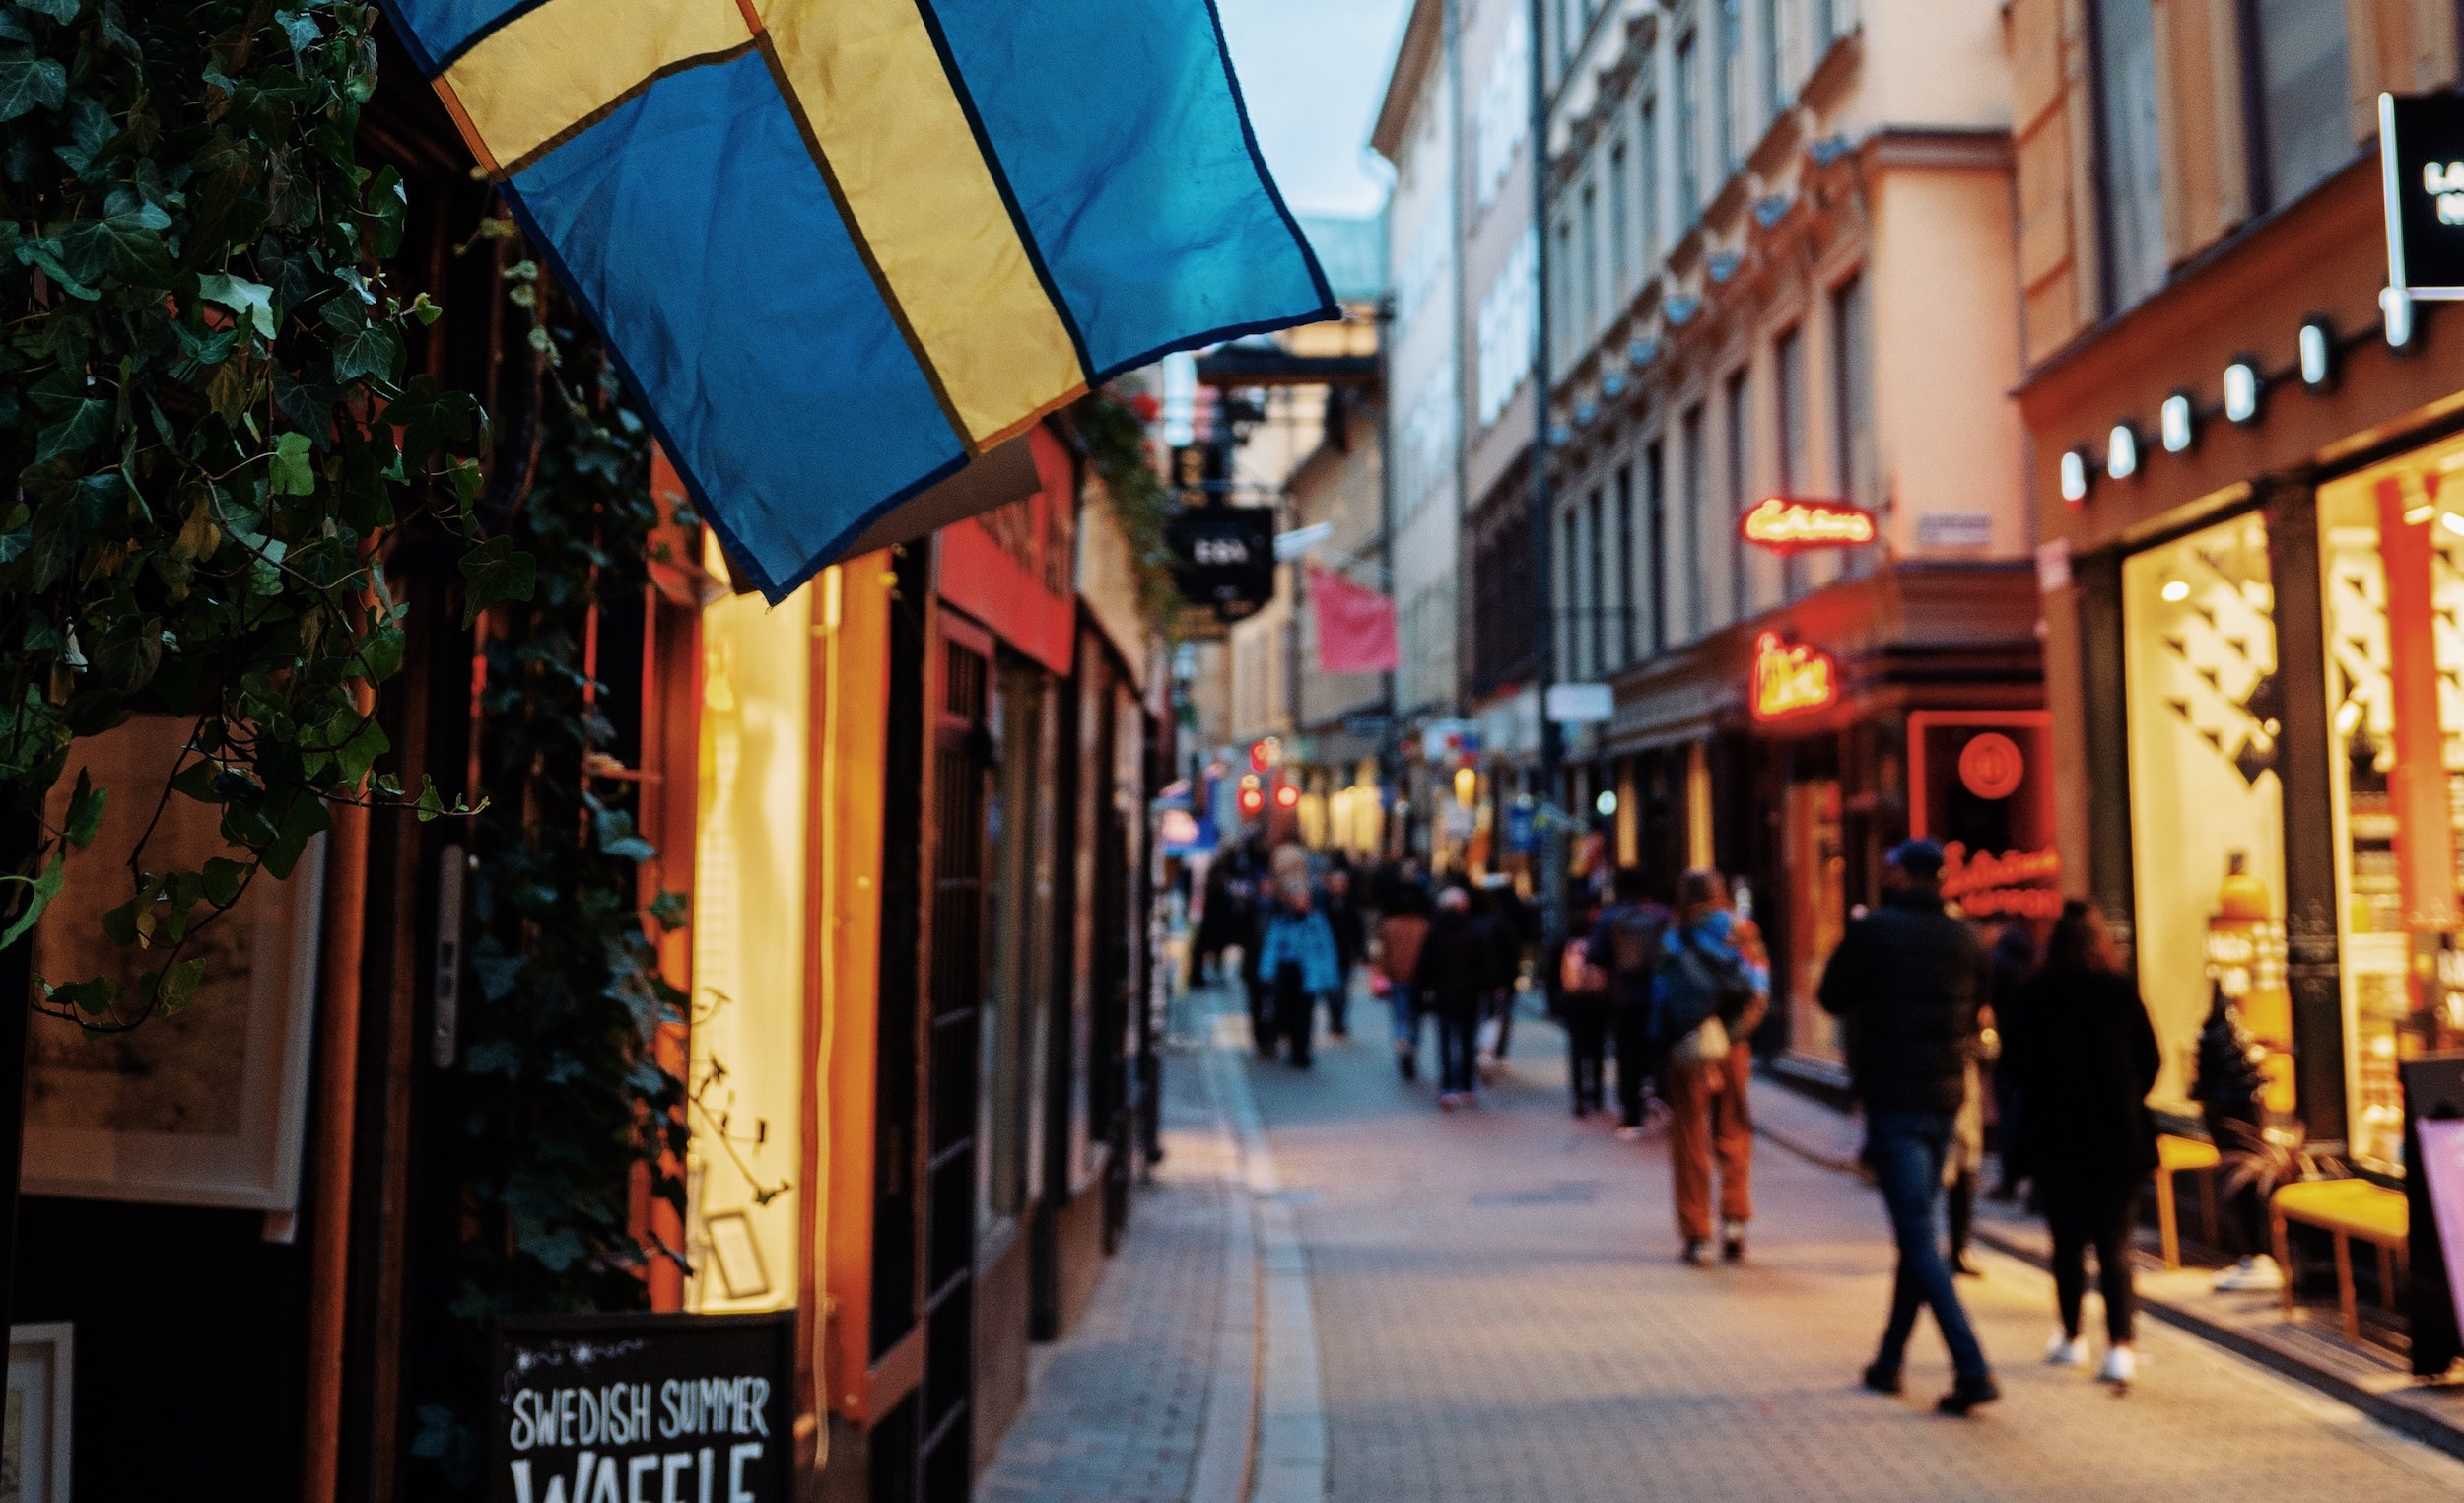 sweden shopping street